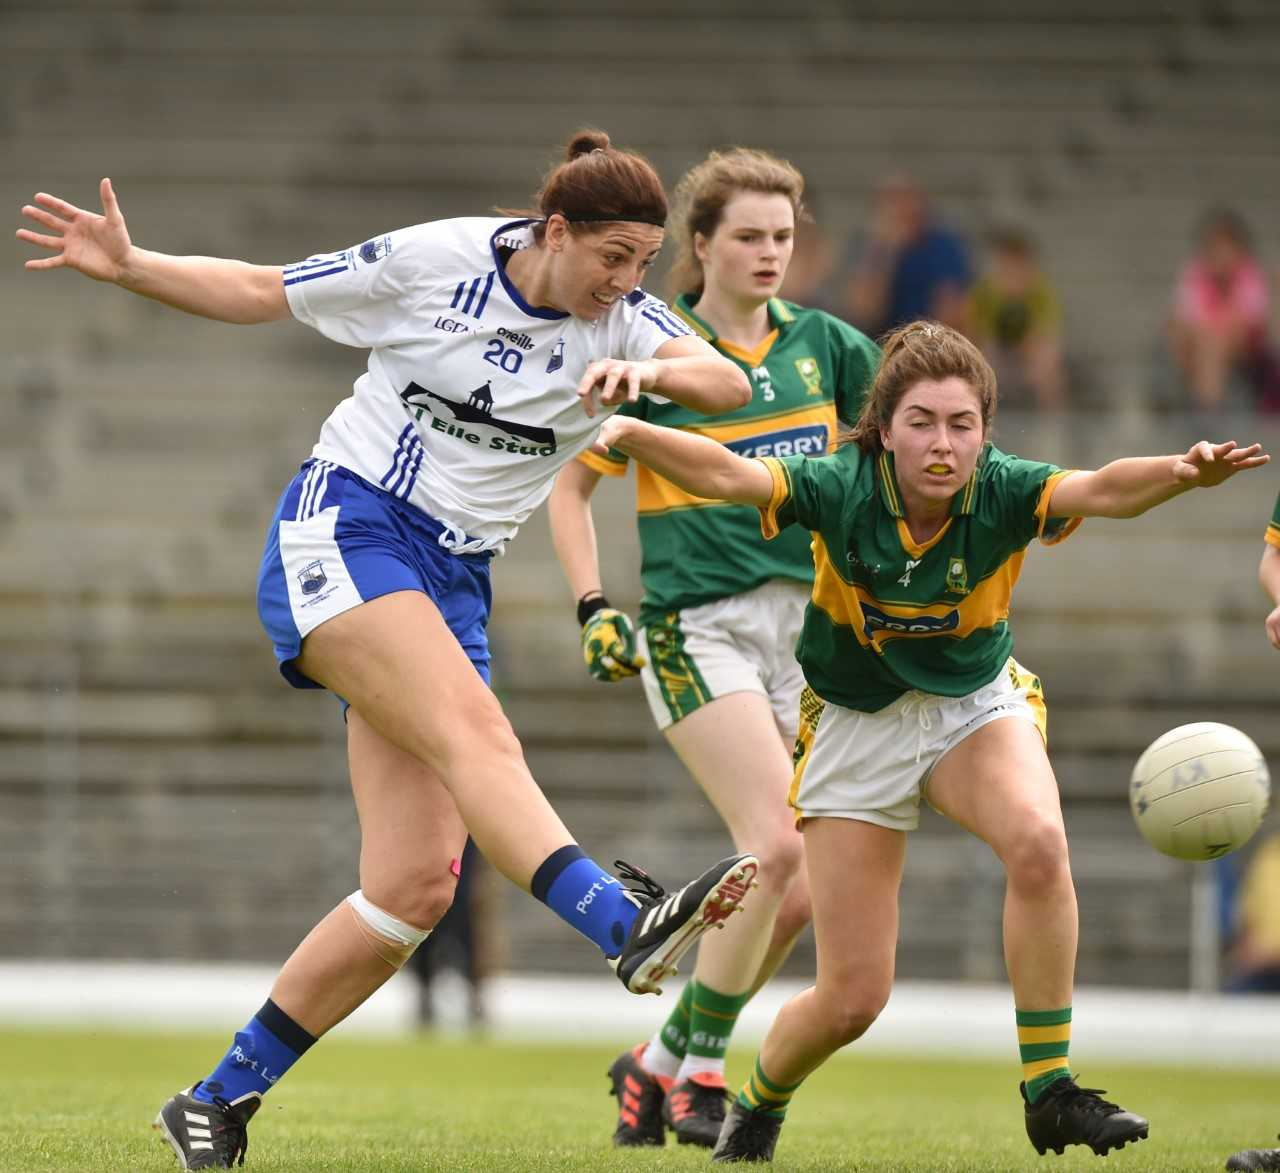 Waterford ladies lose out to Kerry 1-6 to 2-16 in Munster semi-final in Killarney